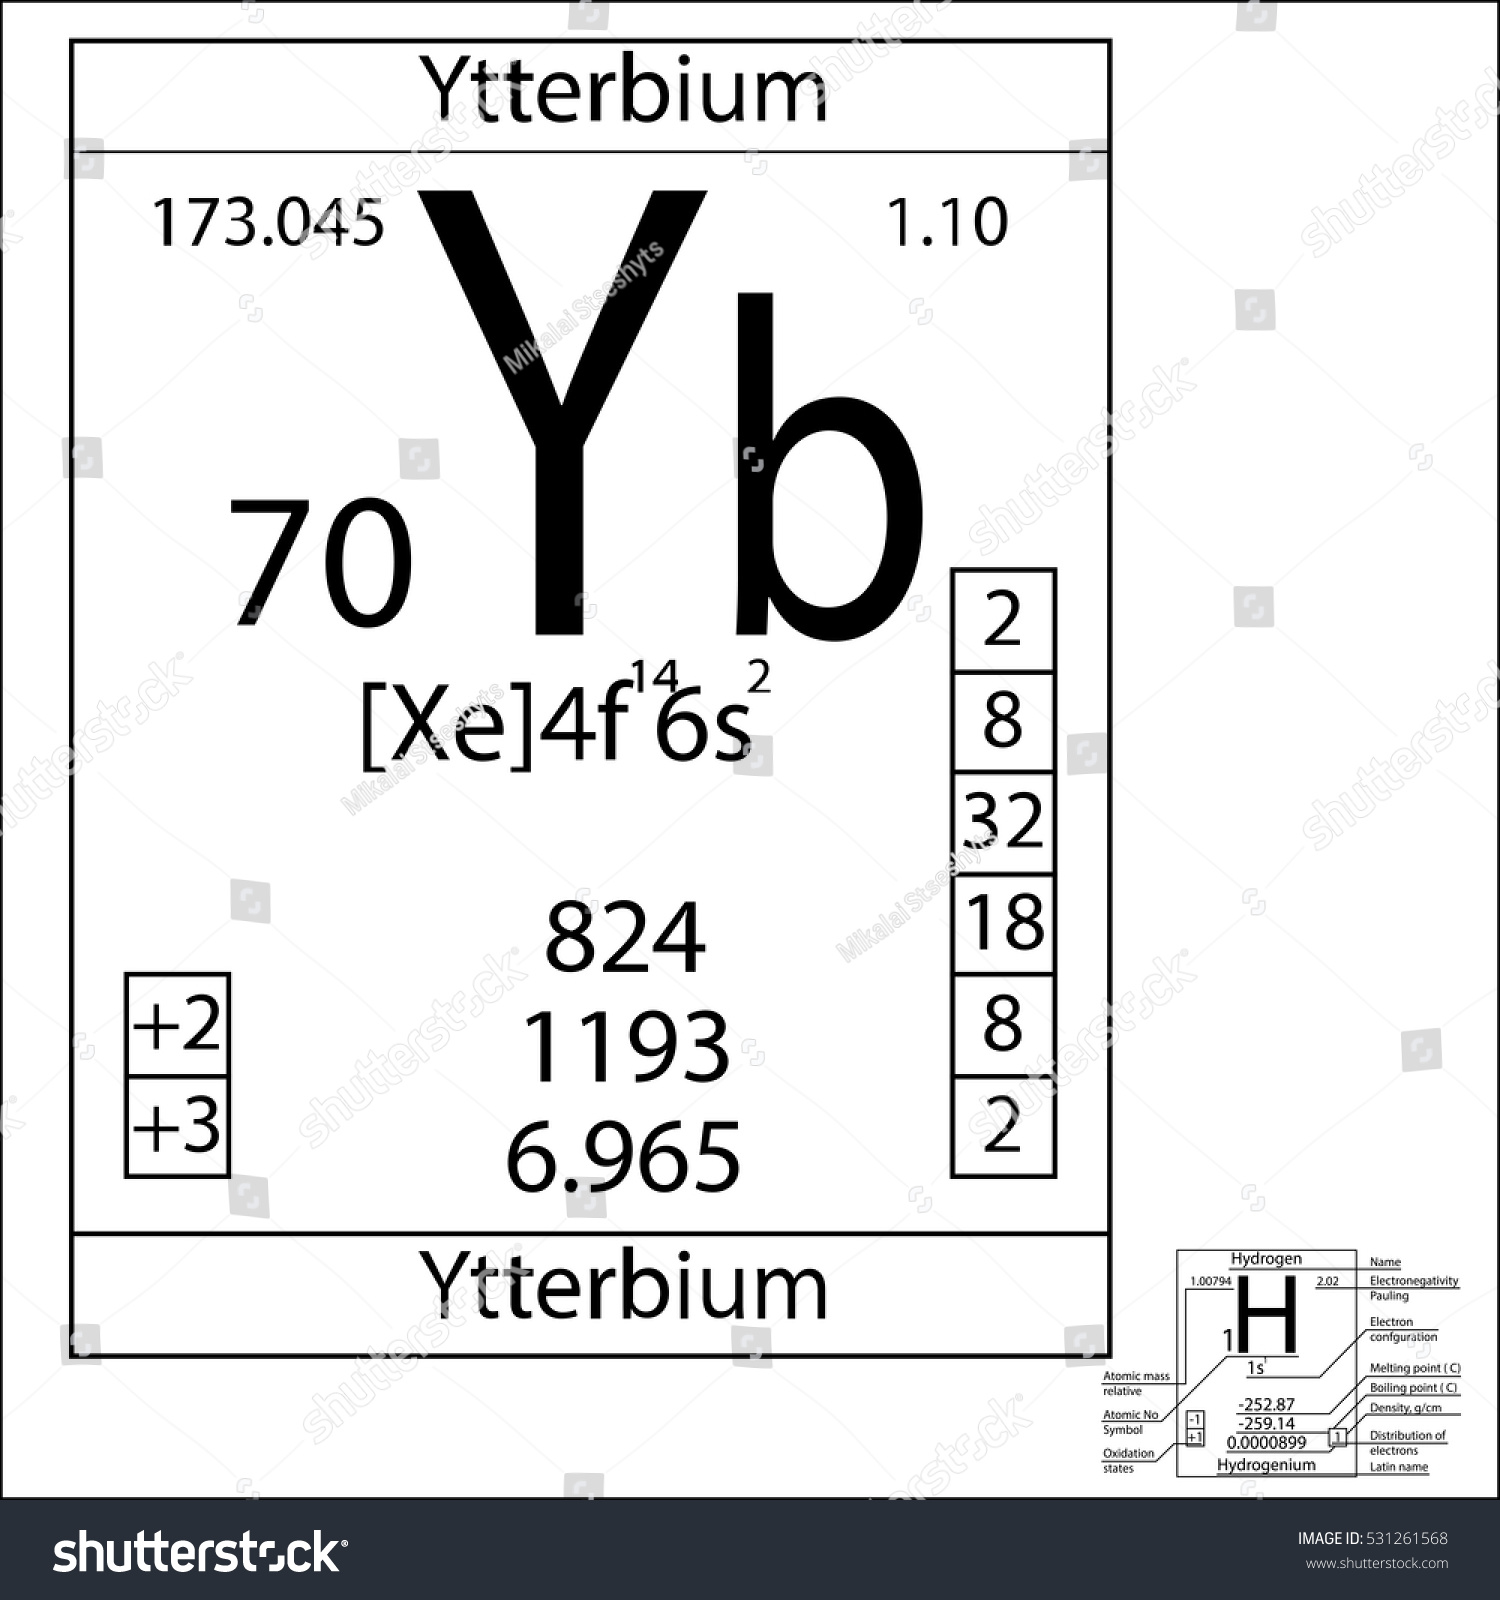 Element y periodic table fender wiring diagram y periodic table image collections periodic table images stock vector the periodic table element ytterbium with gamestrikefo Gallery